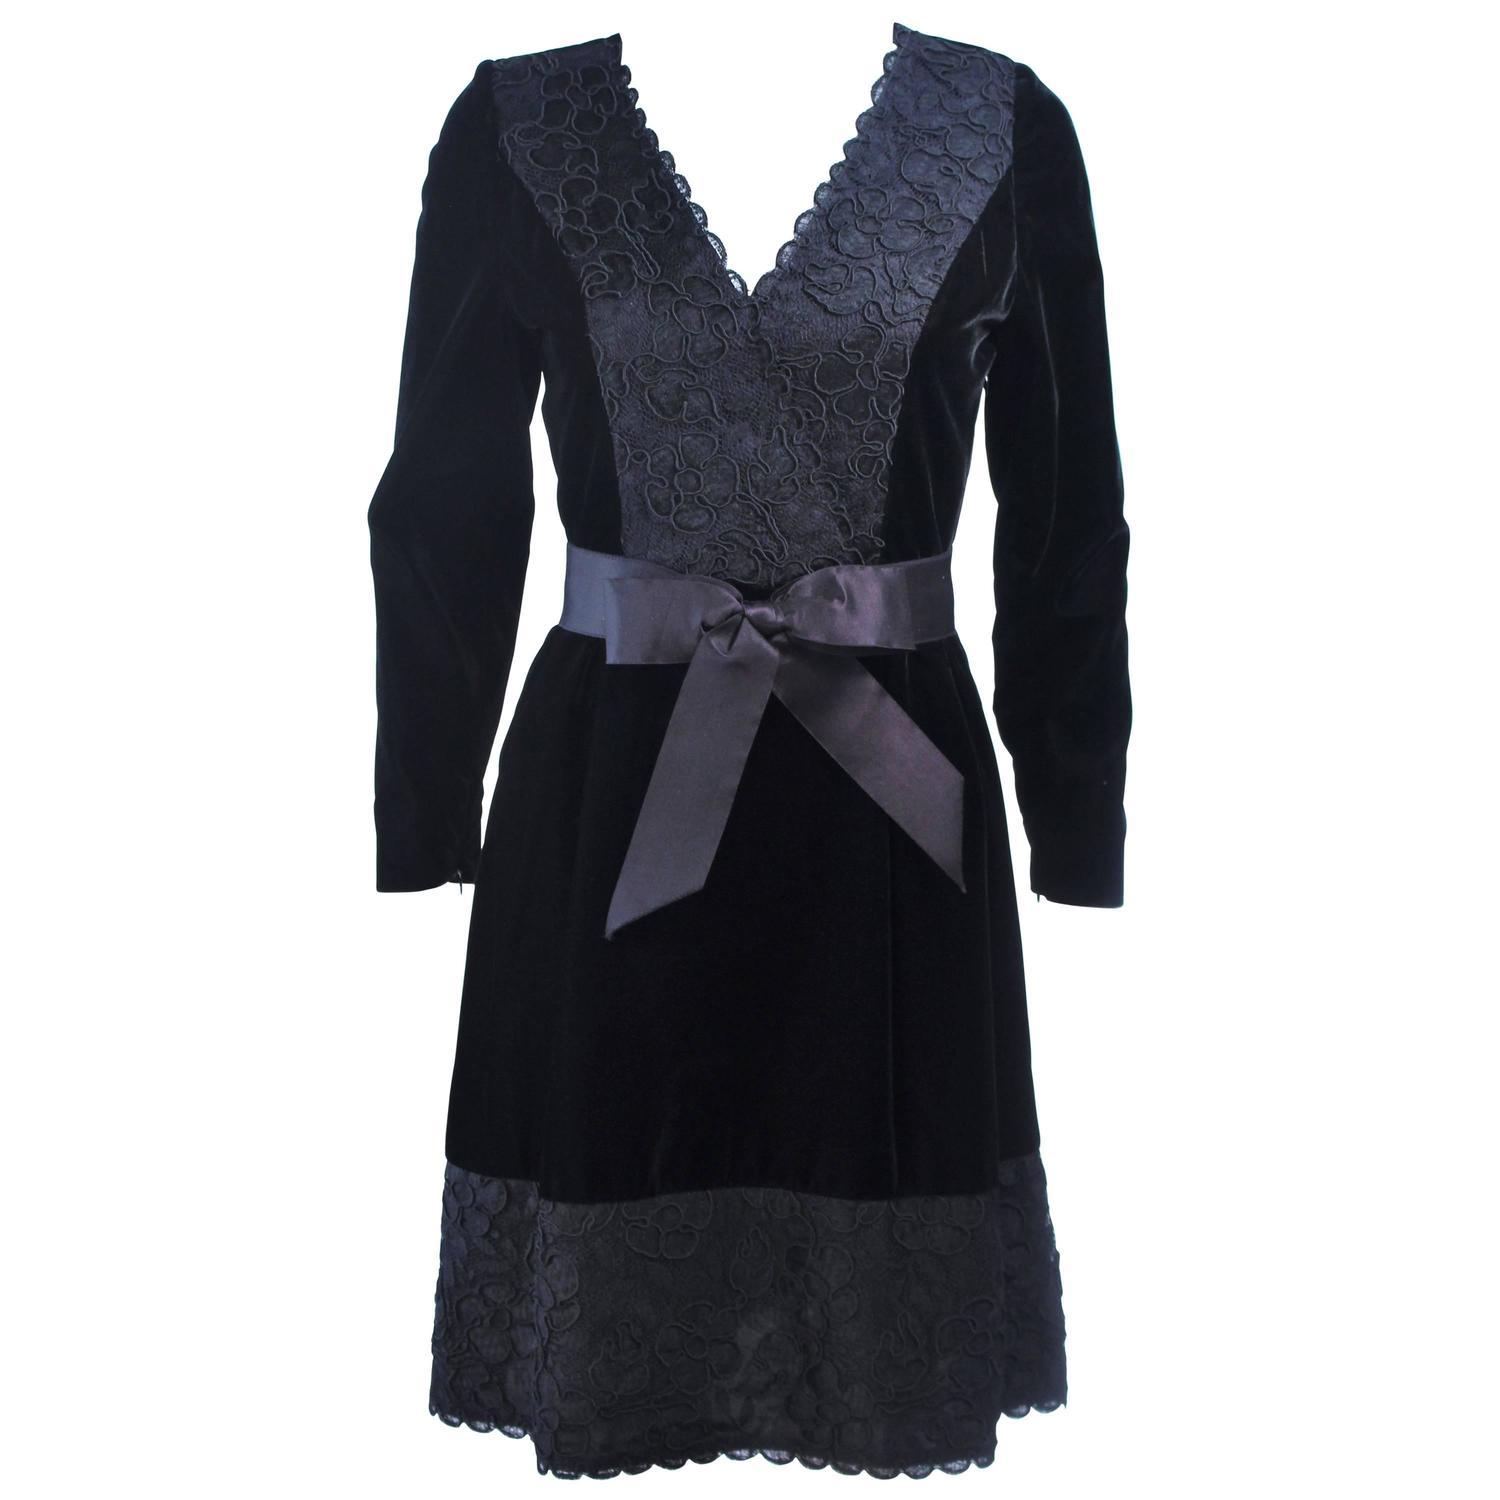 Givenchy black velvet cocktail dress with lace trim and satin belt givenchy black velvet cocktail dress with lace trim and satin belt size 4 for sale at 1stdibs ombrellifo Image collections